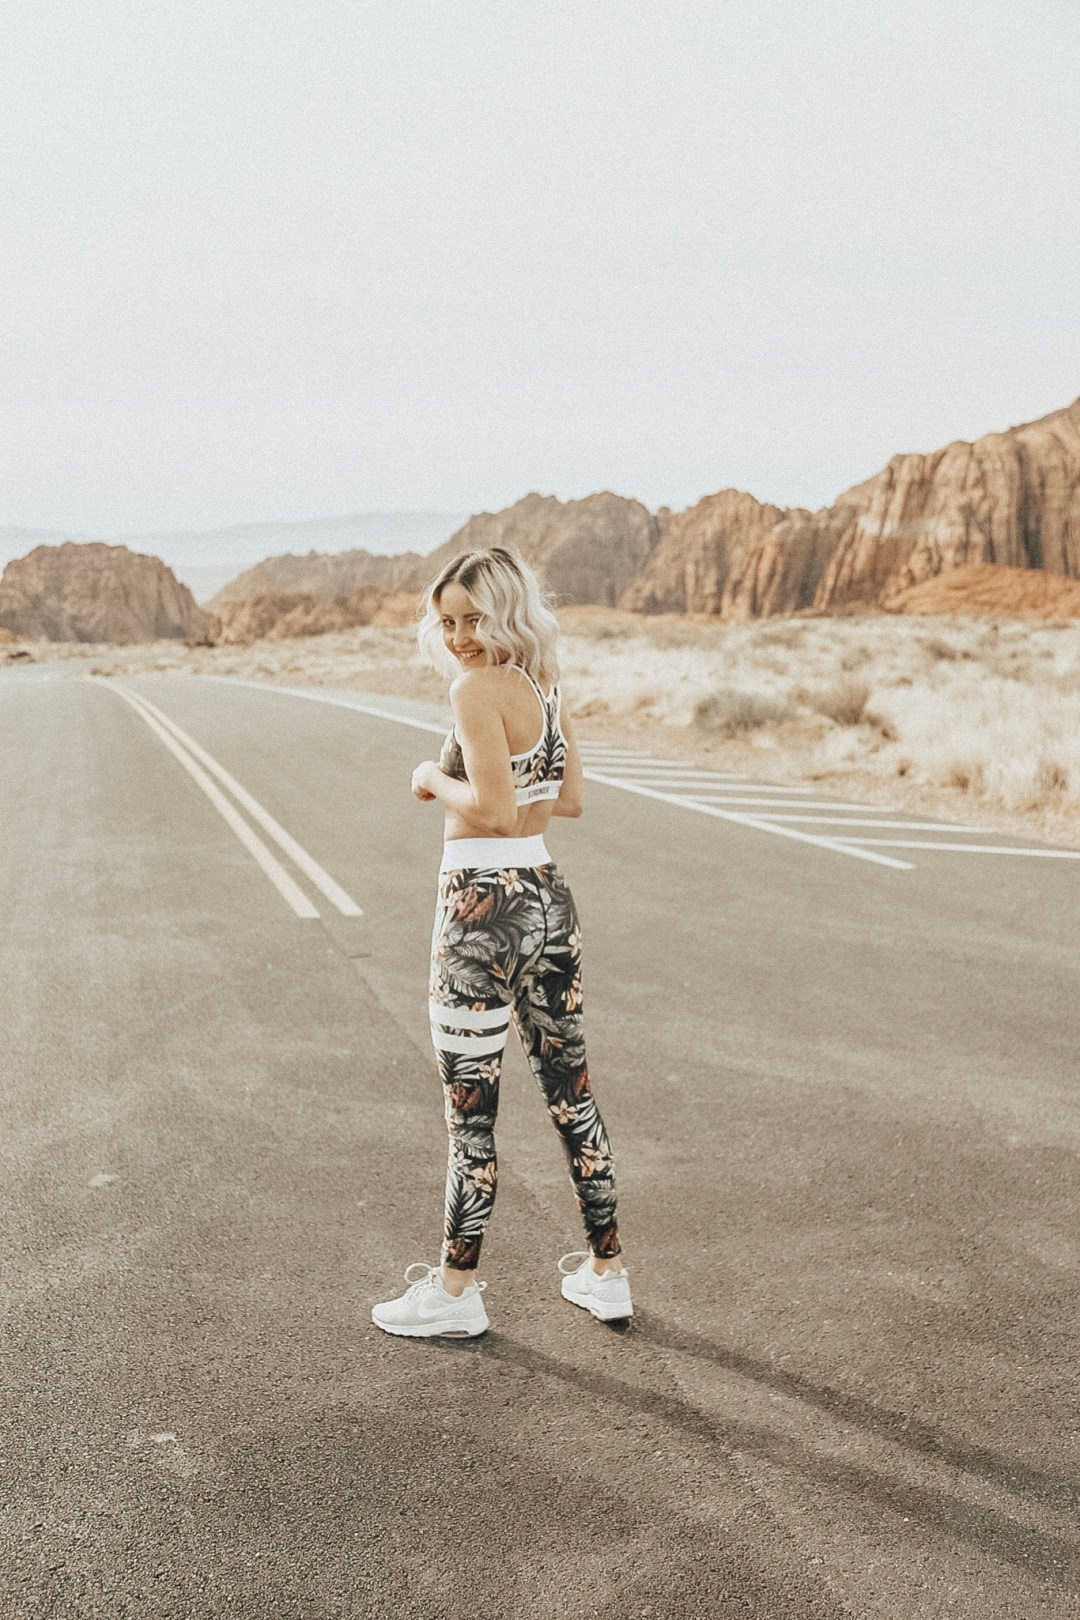 Alena Gidenko of modaprints.com shares her 2018 goals on staying healthy and life goals